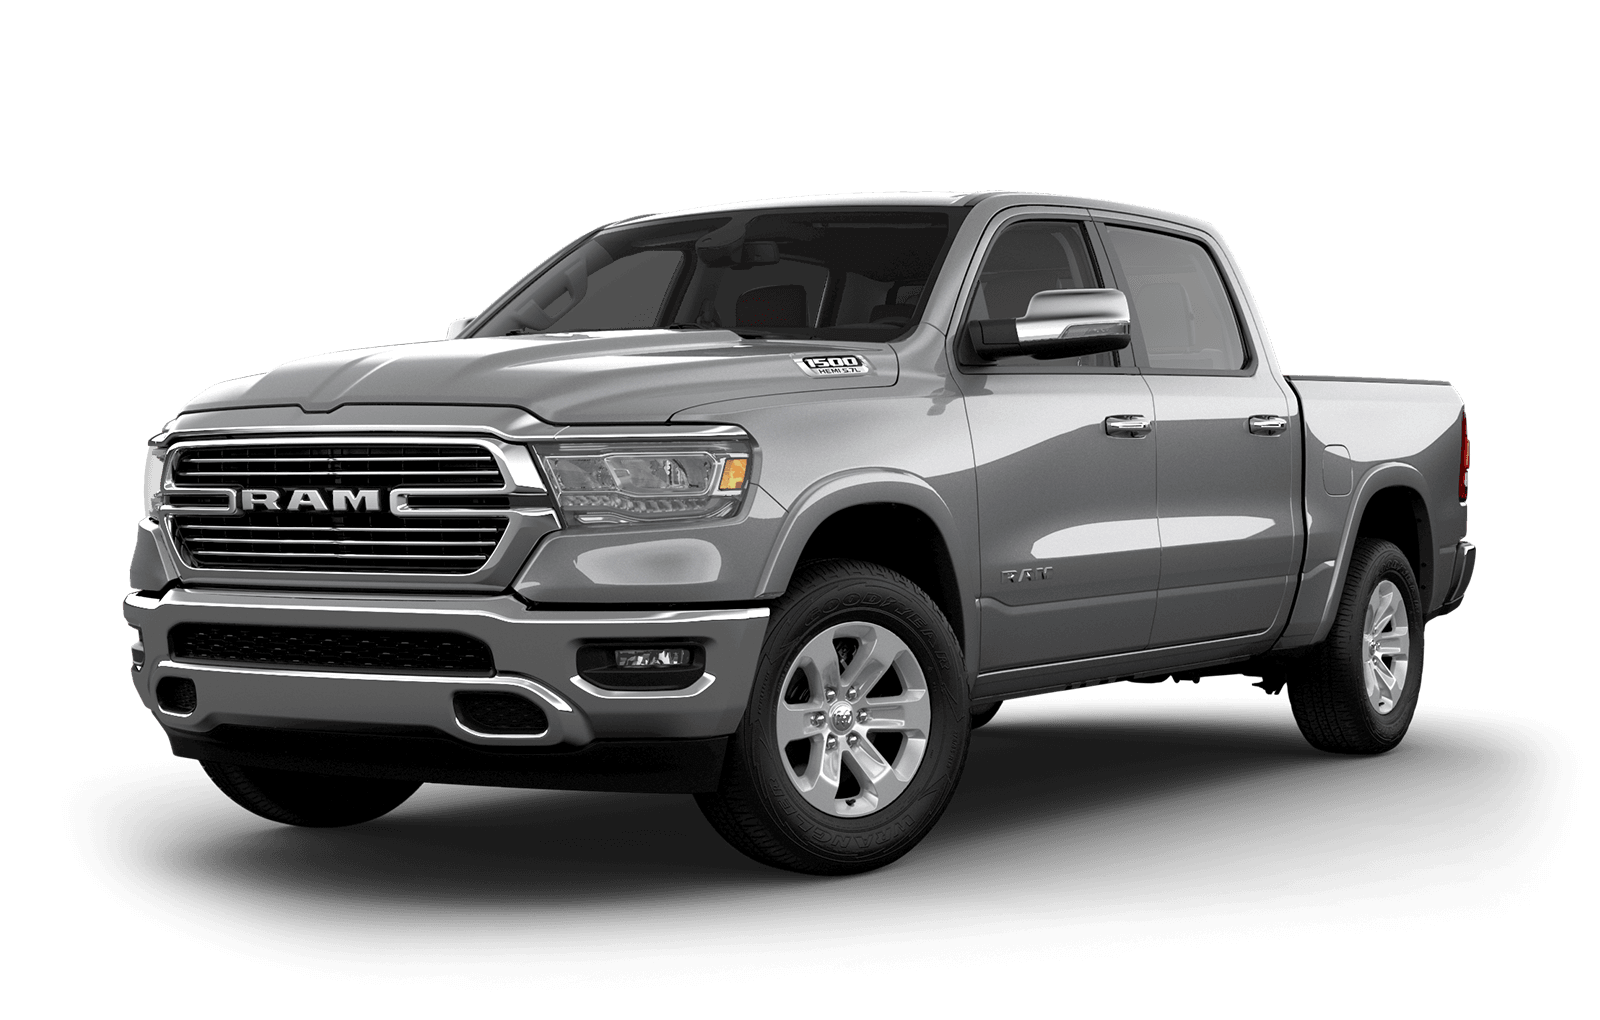 2019 Ram 1500 colour billet metallic